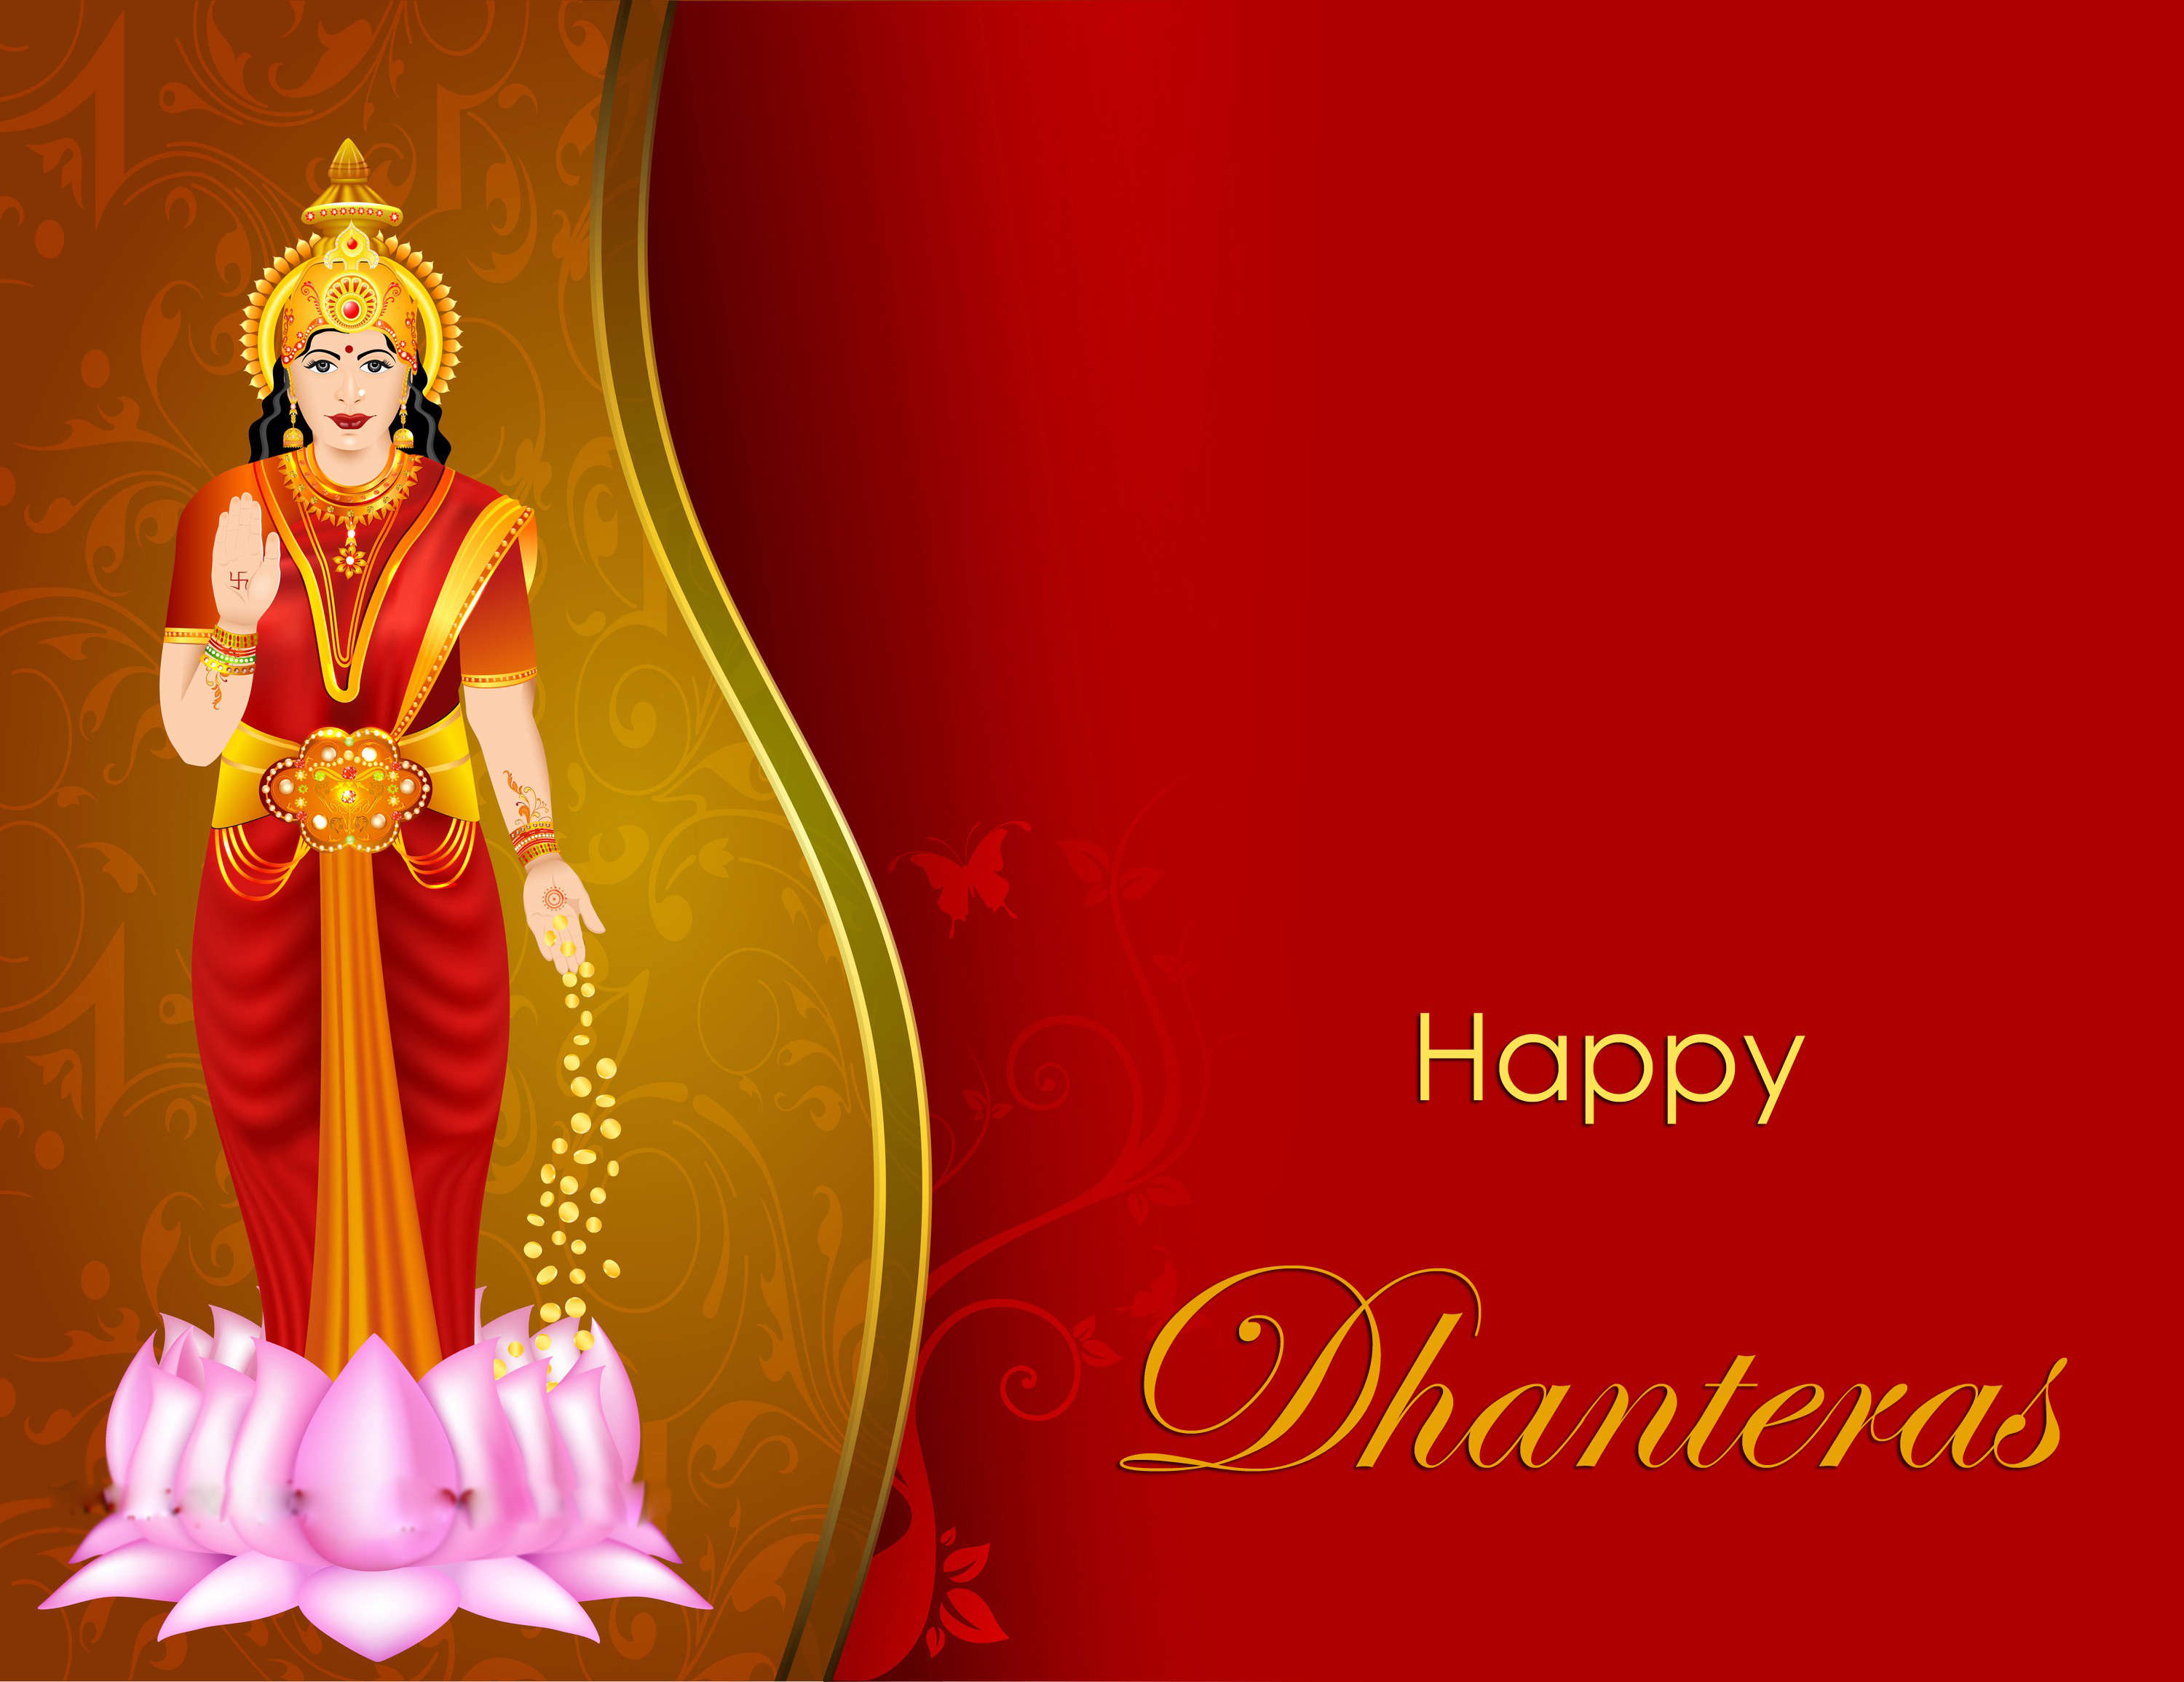 Happy Dhanteras 2020: Images, Quotes, Wishes, Messages & Cards